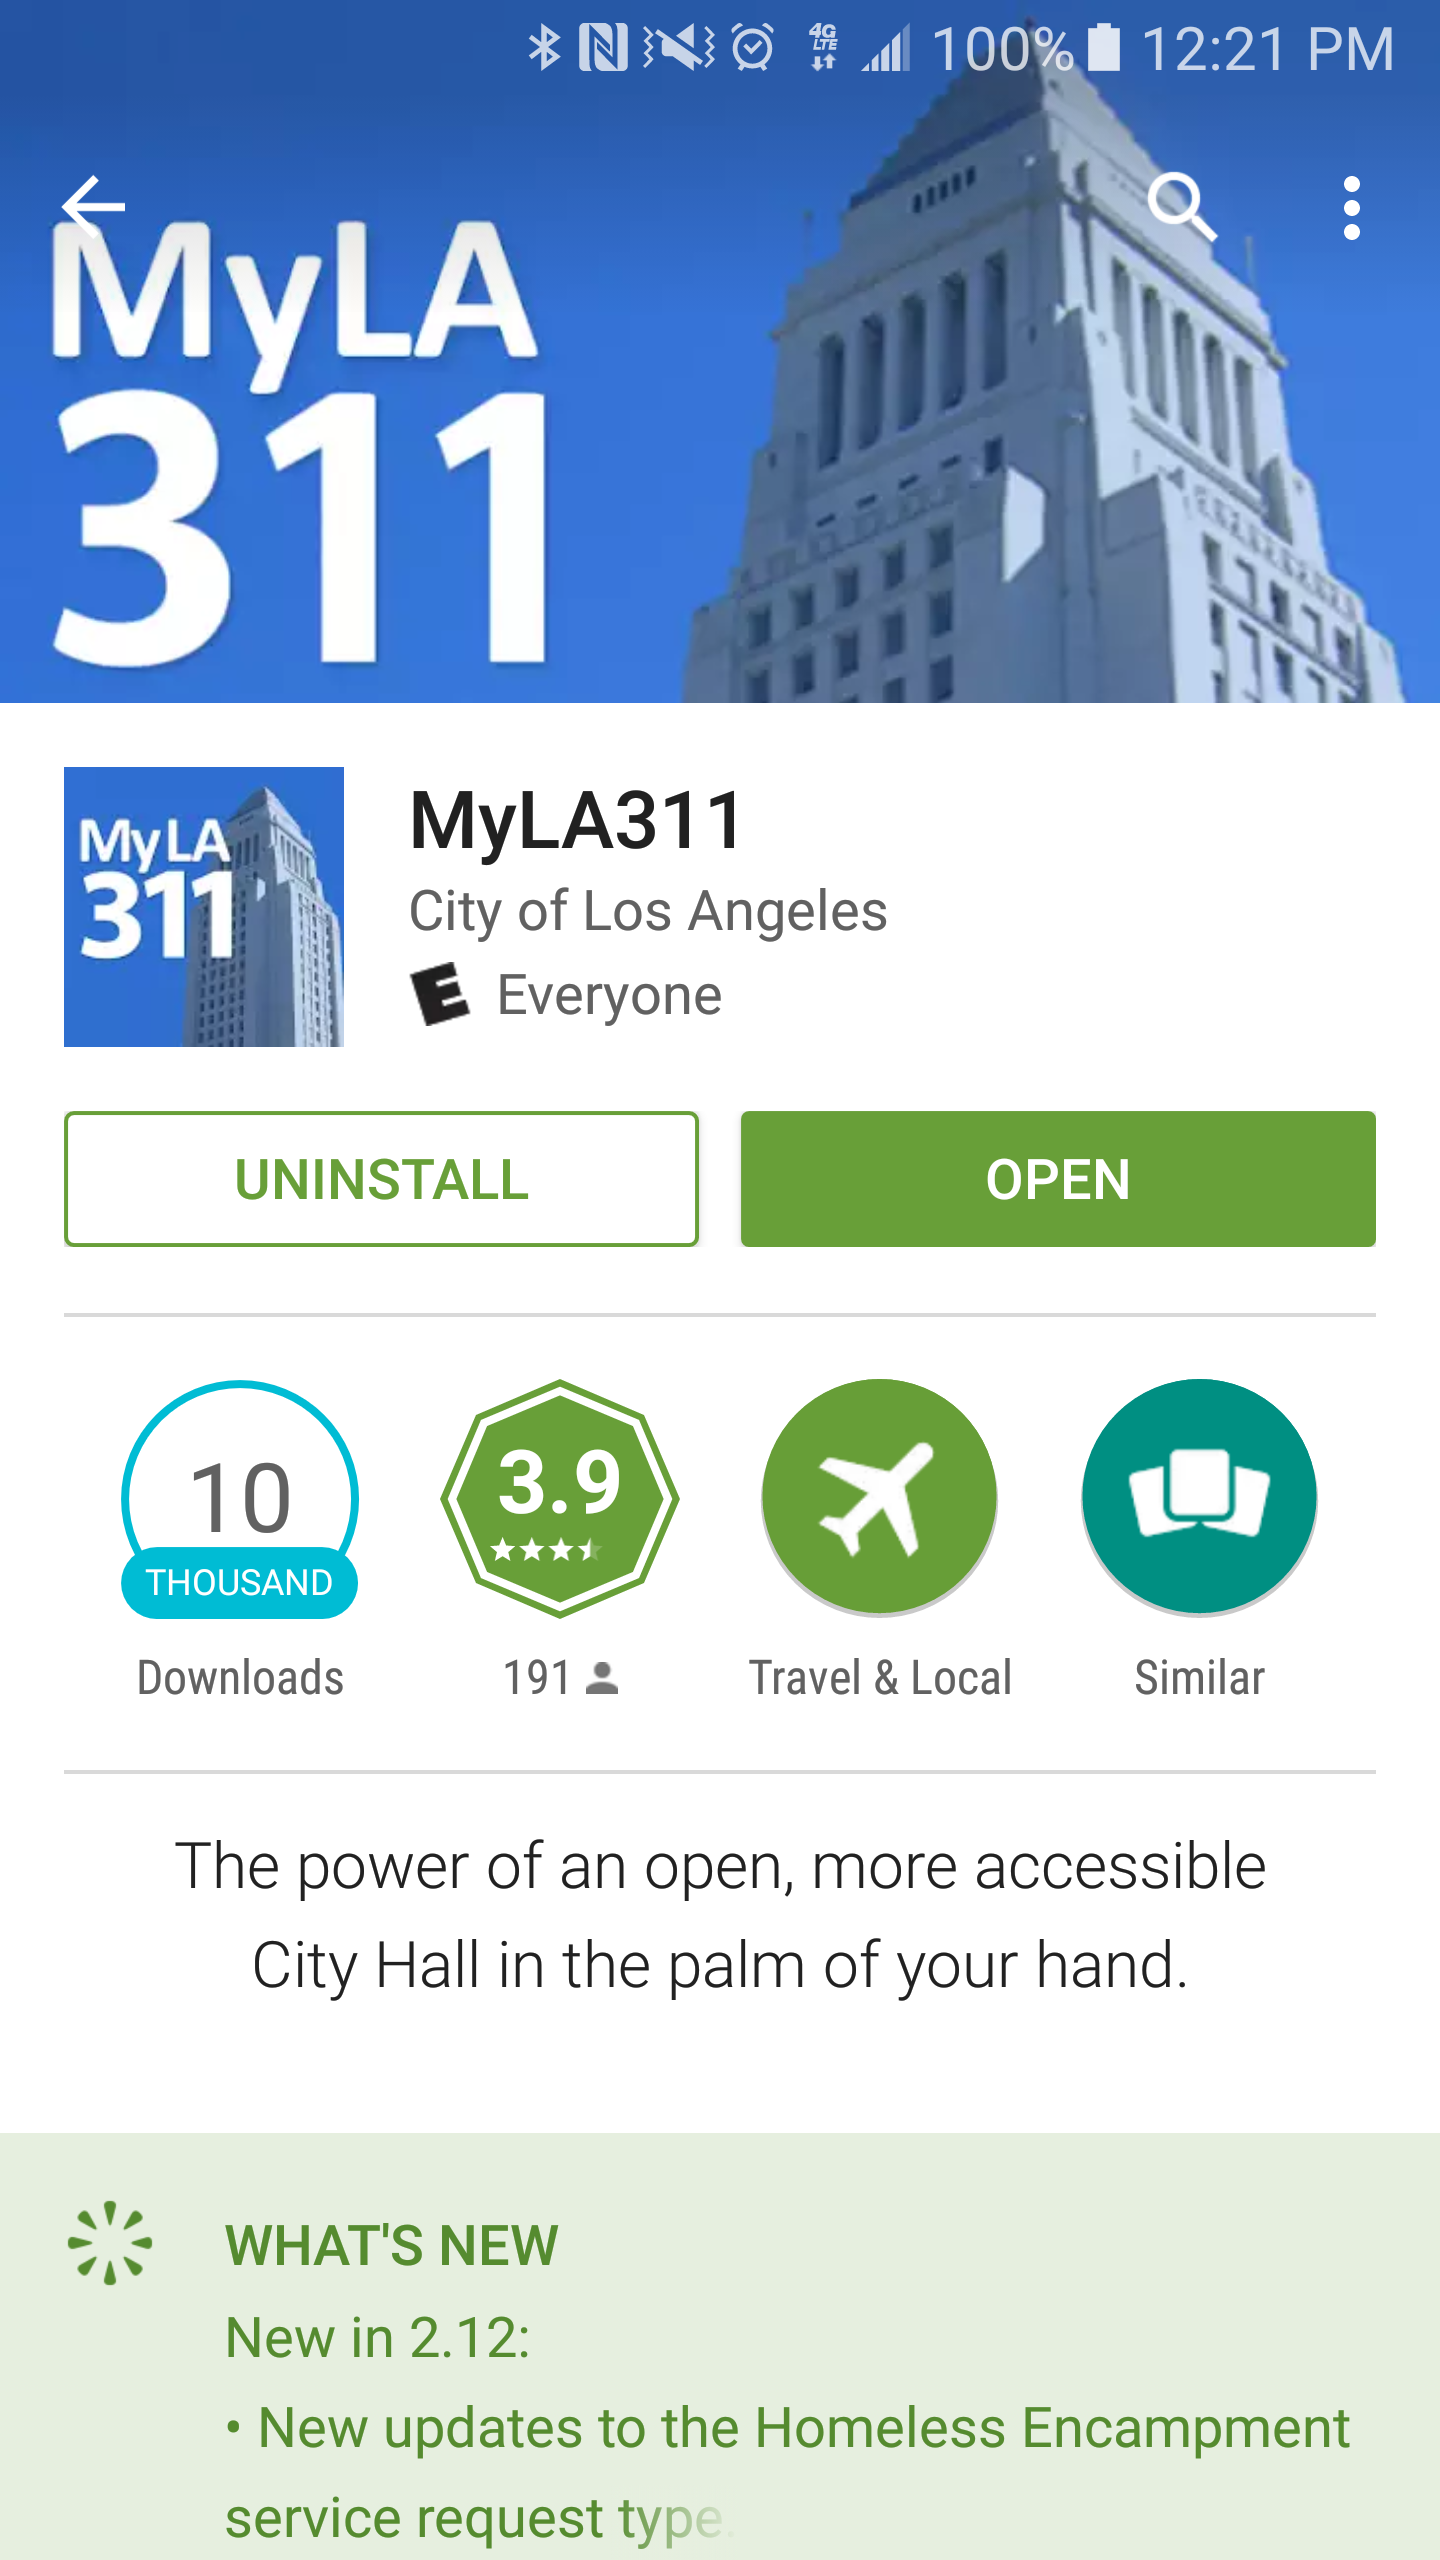 To download the   MyLA311   app, visit   Google Play   or   Apple App Store  .